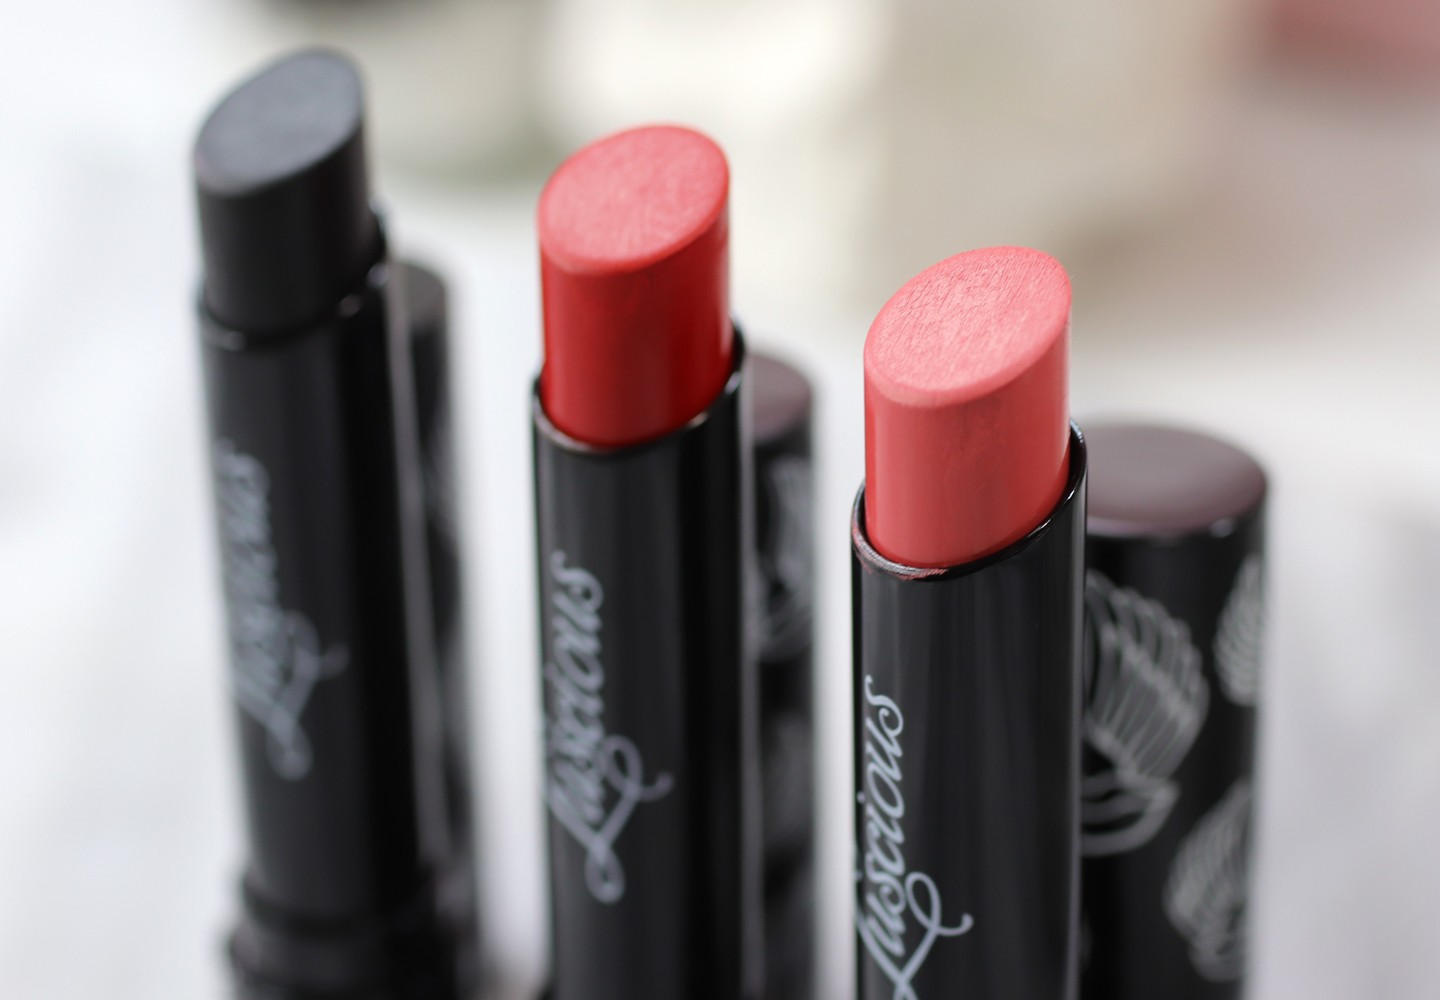 Luscious Cosmetics Creamy Matte Lipstick - Luscious Cosmetics Review and Try On by popular LA cruelty free beauty blogger My Beauty Bunny